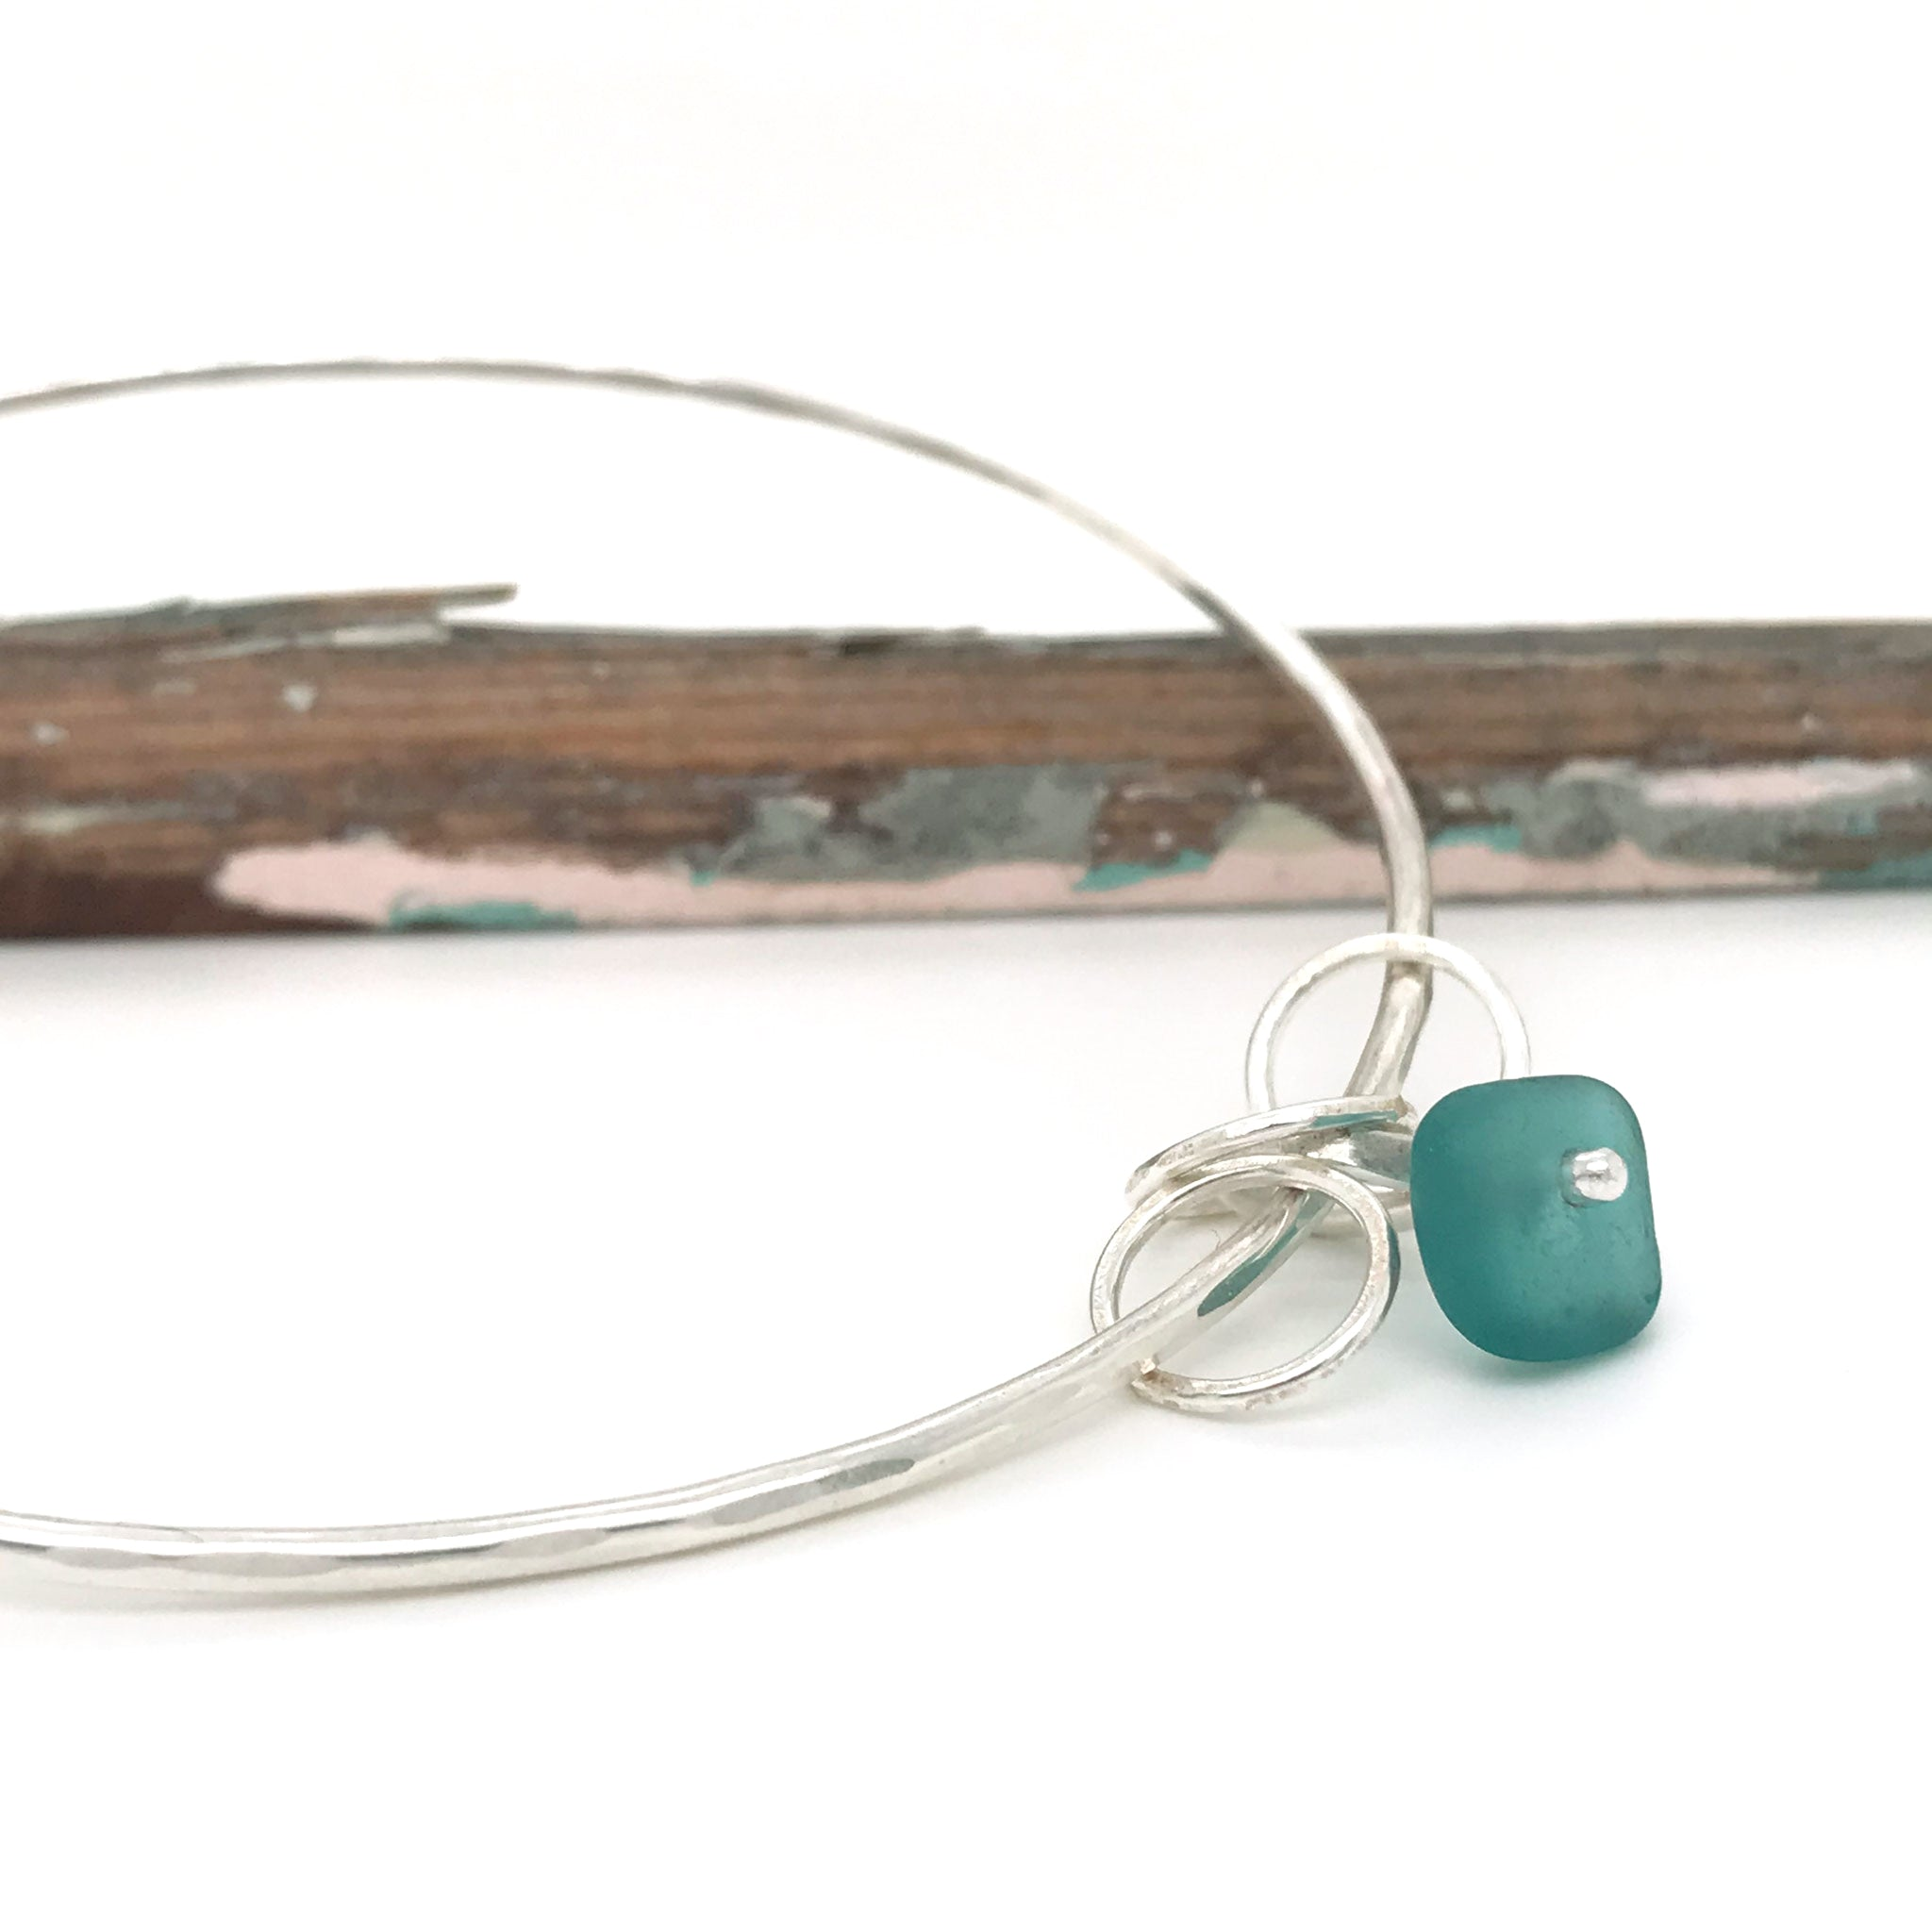 teal seaglass bangle sterling silver Kriket Broadhurst jewellery